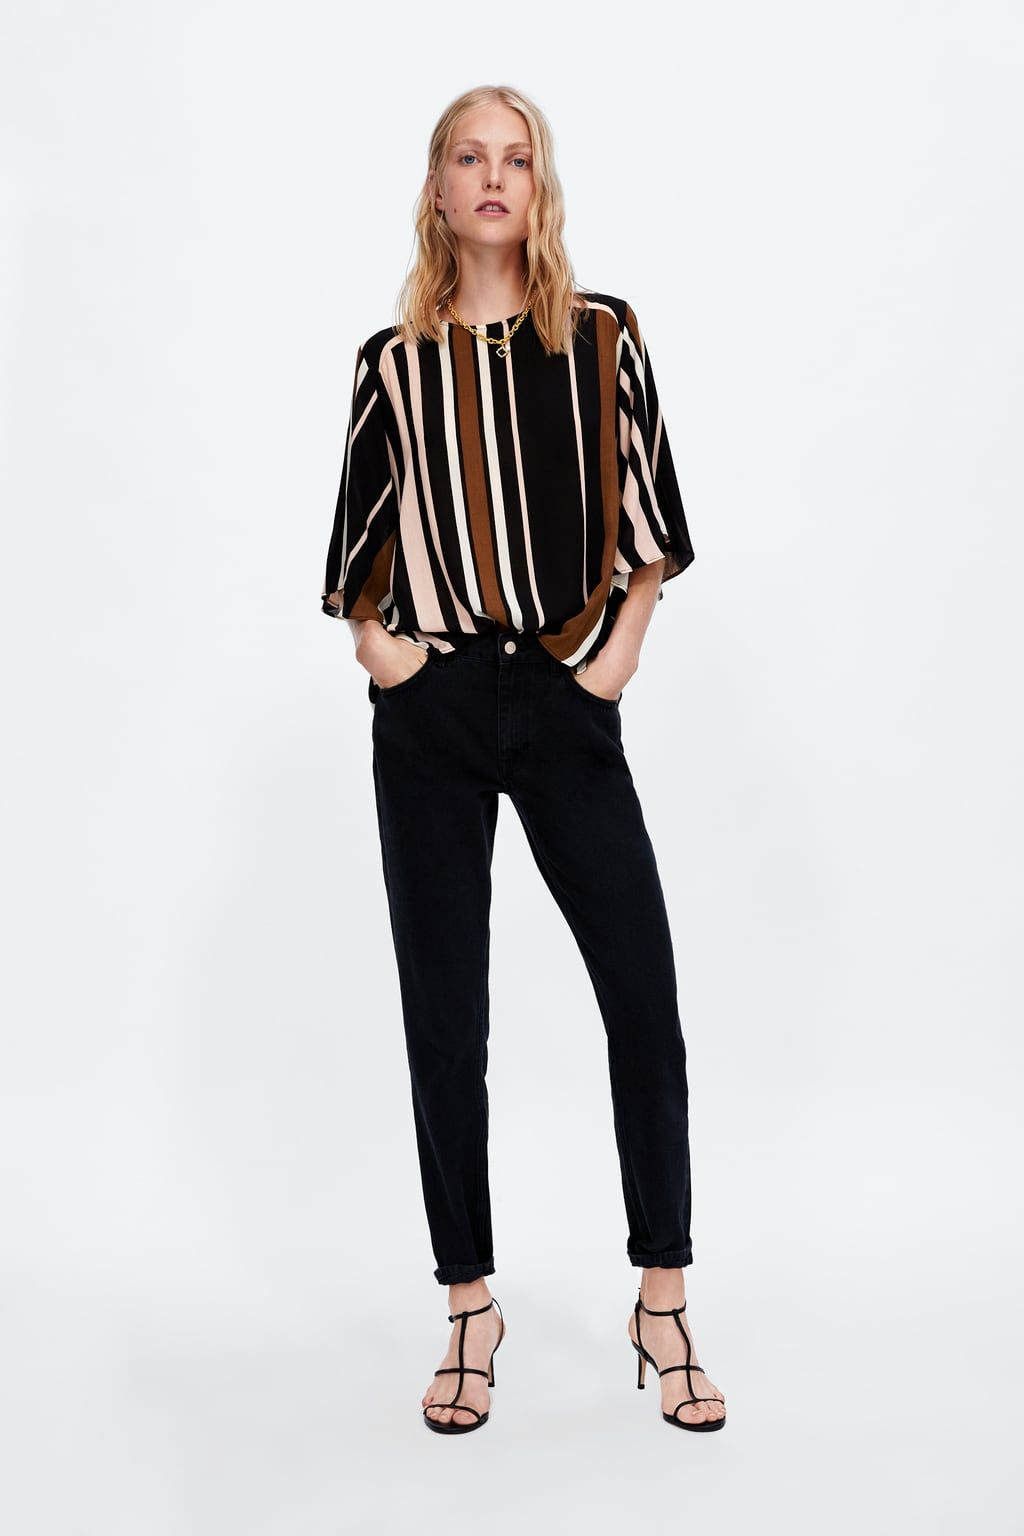 c093589b8cff21 ZARA - WOMAN - STRIPED BLOUSE